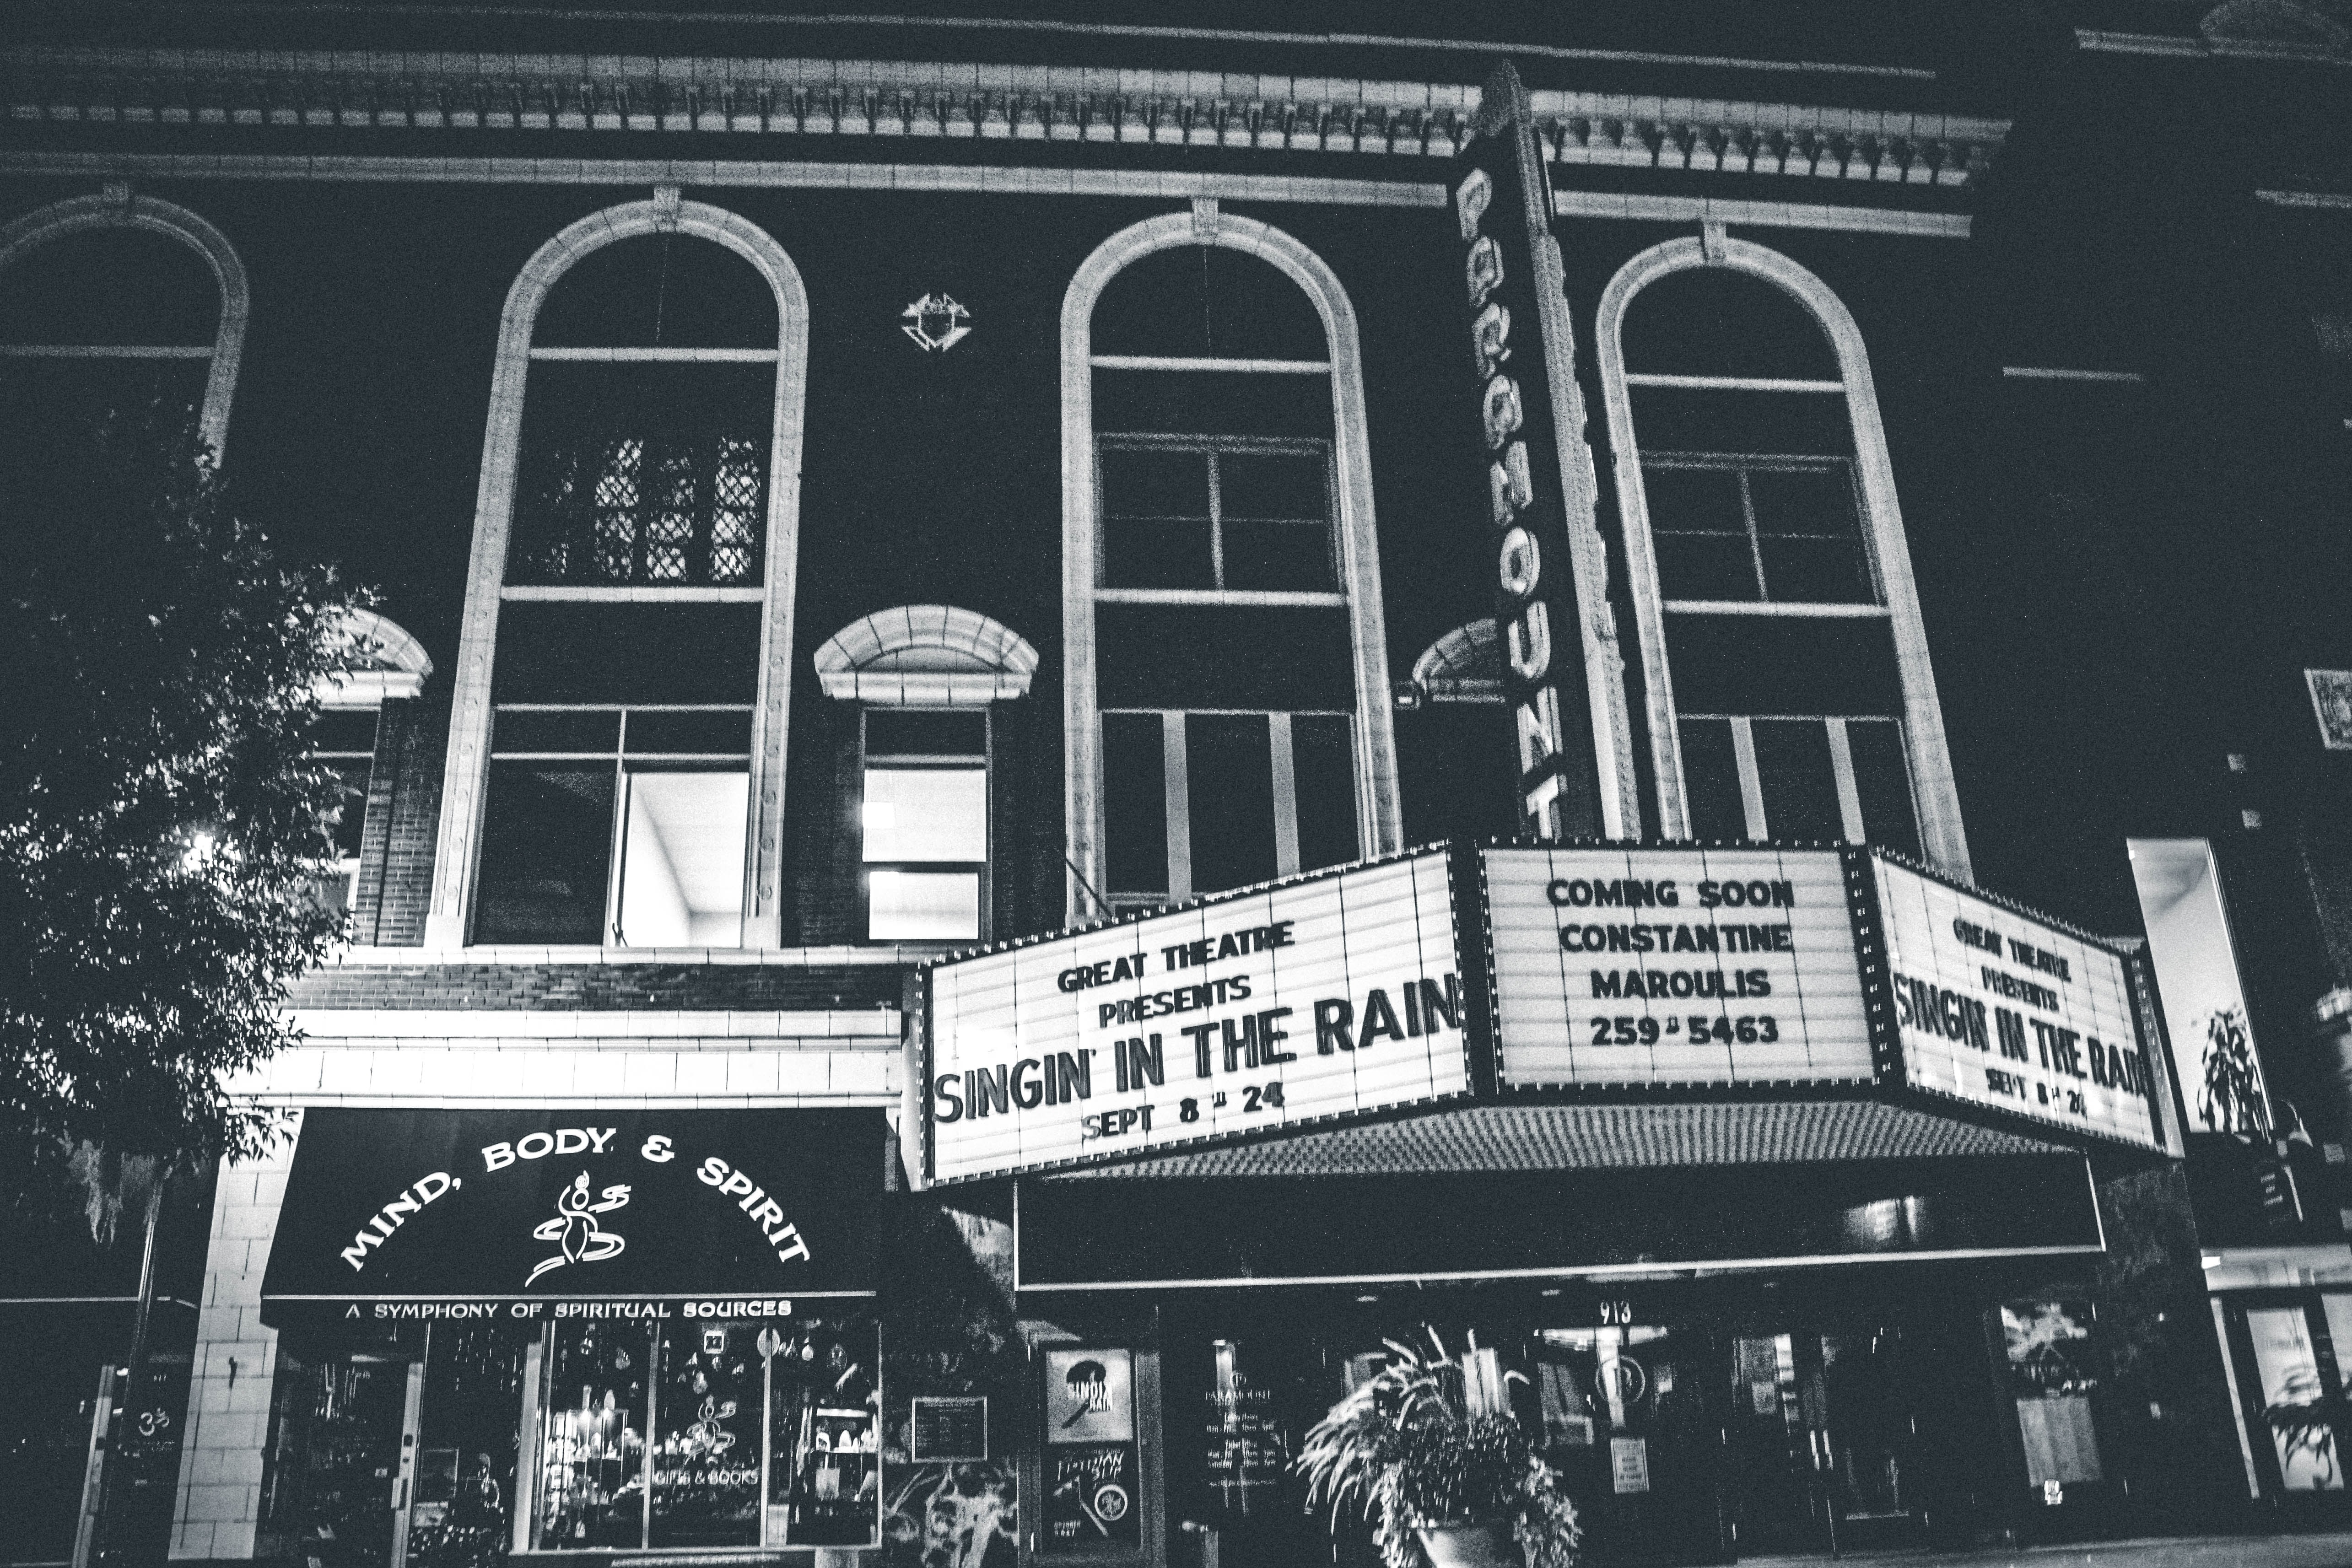 grayscale photo of theater hall with Singin in the Rain movie